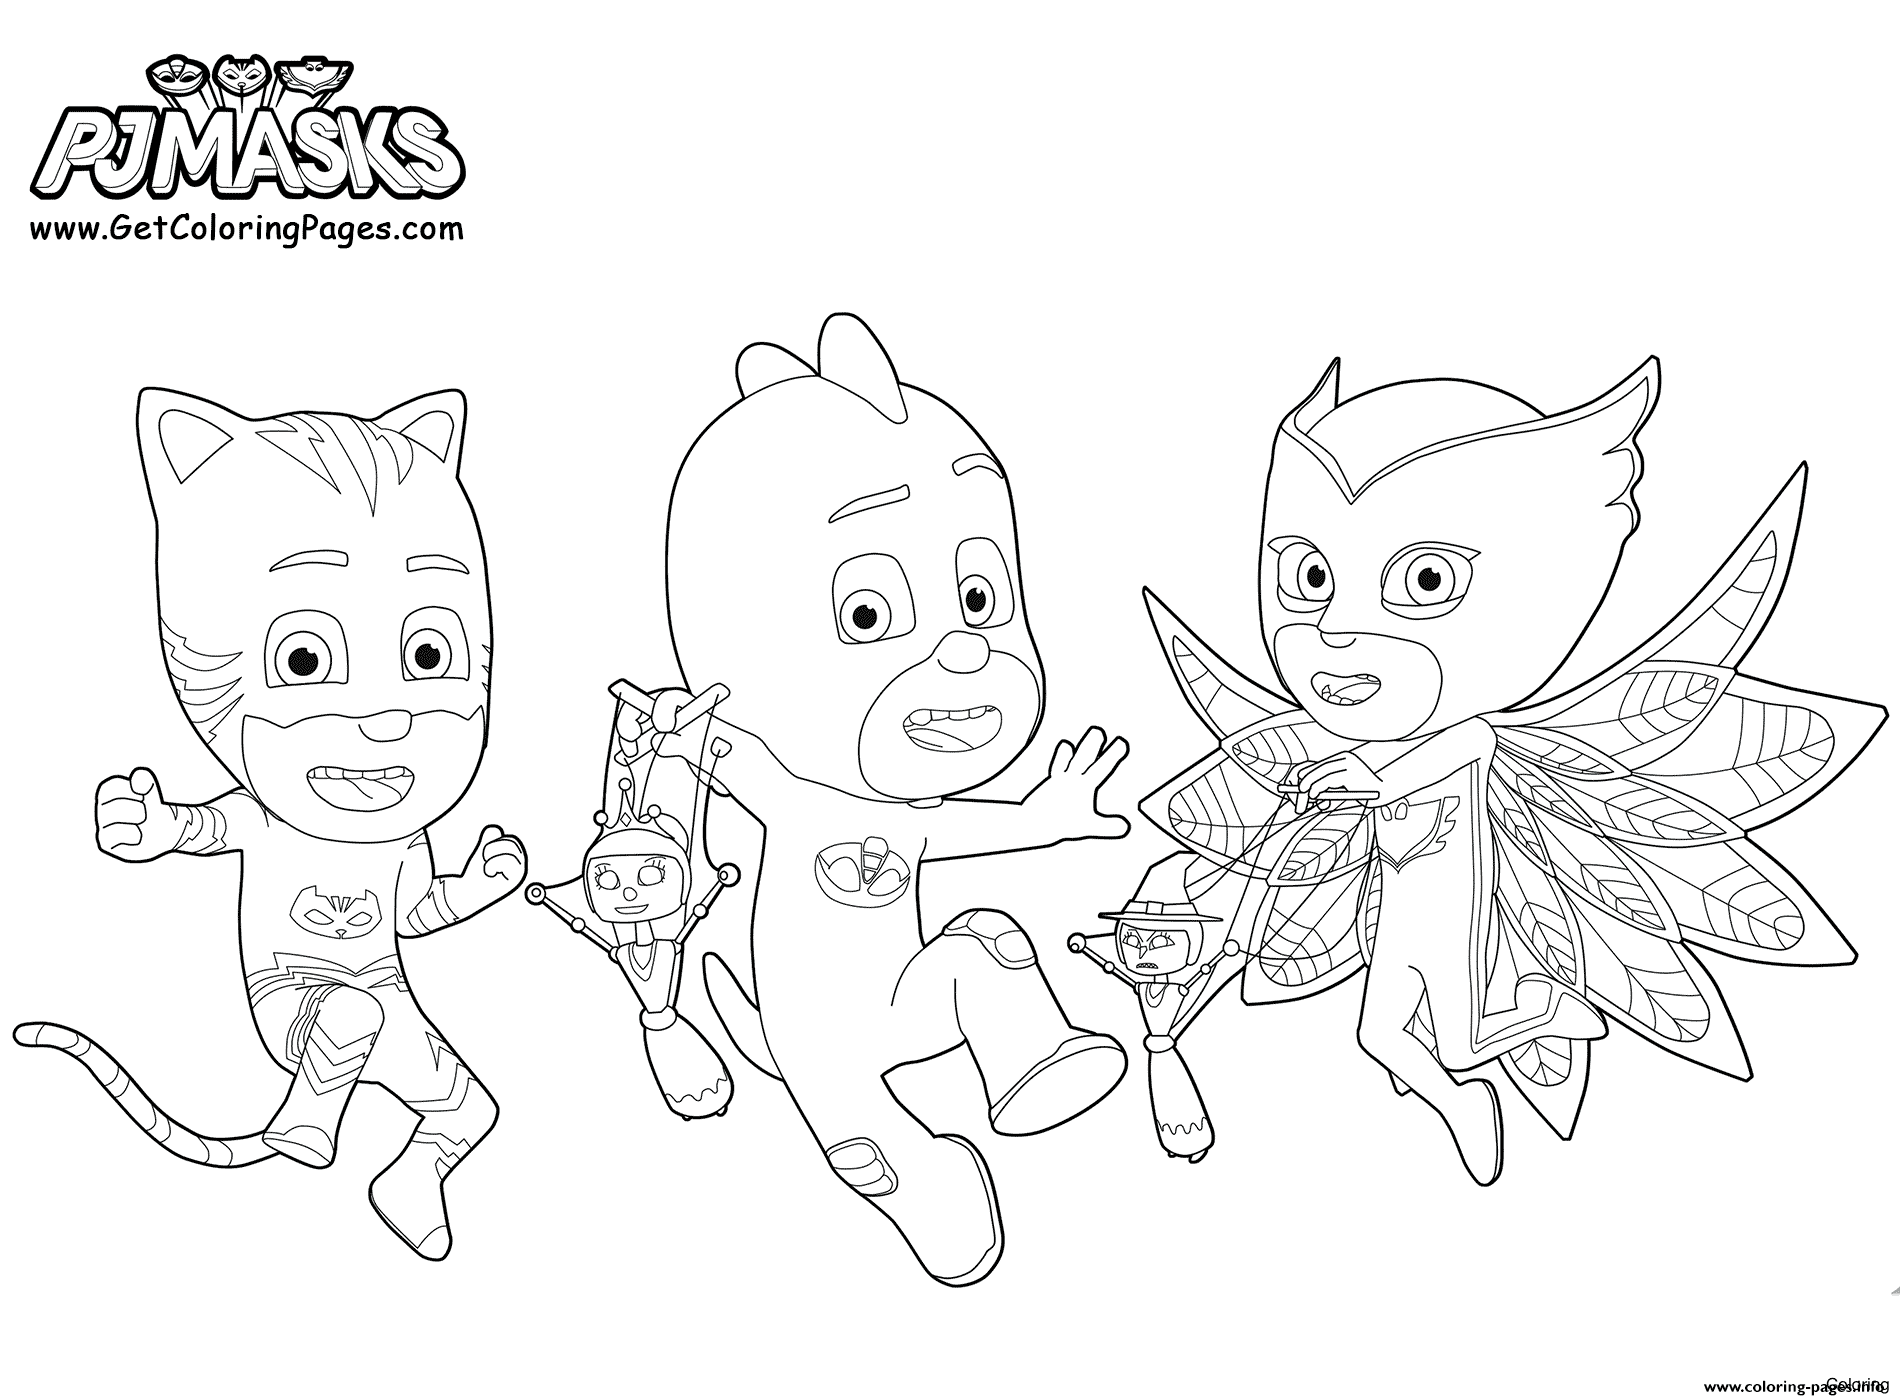 Wallpapers Hd References Pj Masks Gekko Mobile Coloring Pages